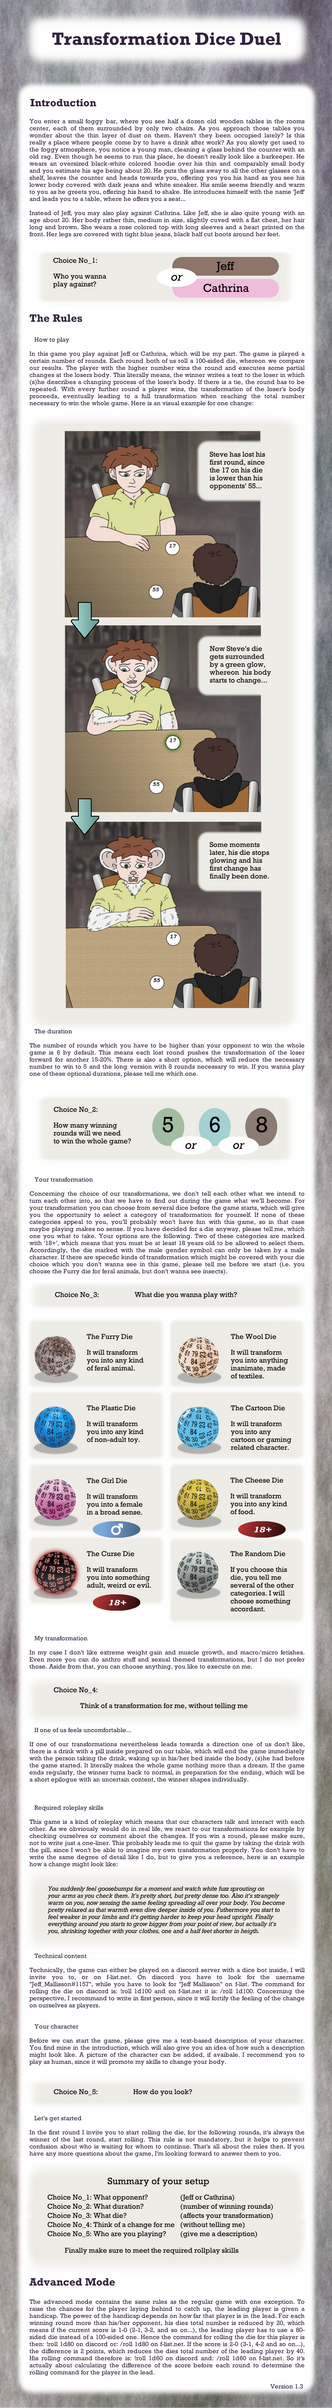 Transformation Dice Duel Game - Rules Sheet